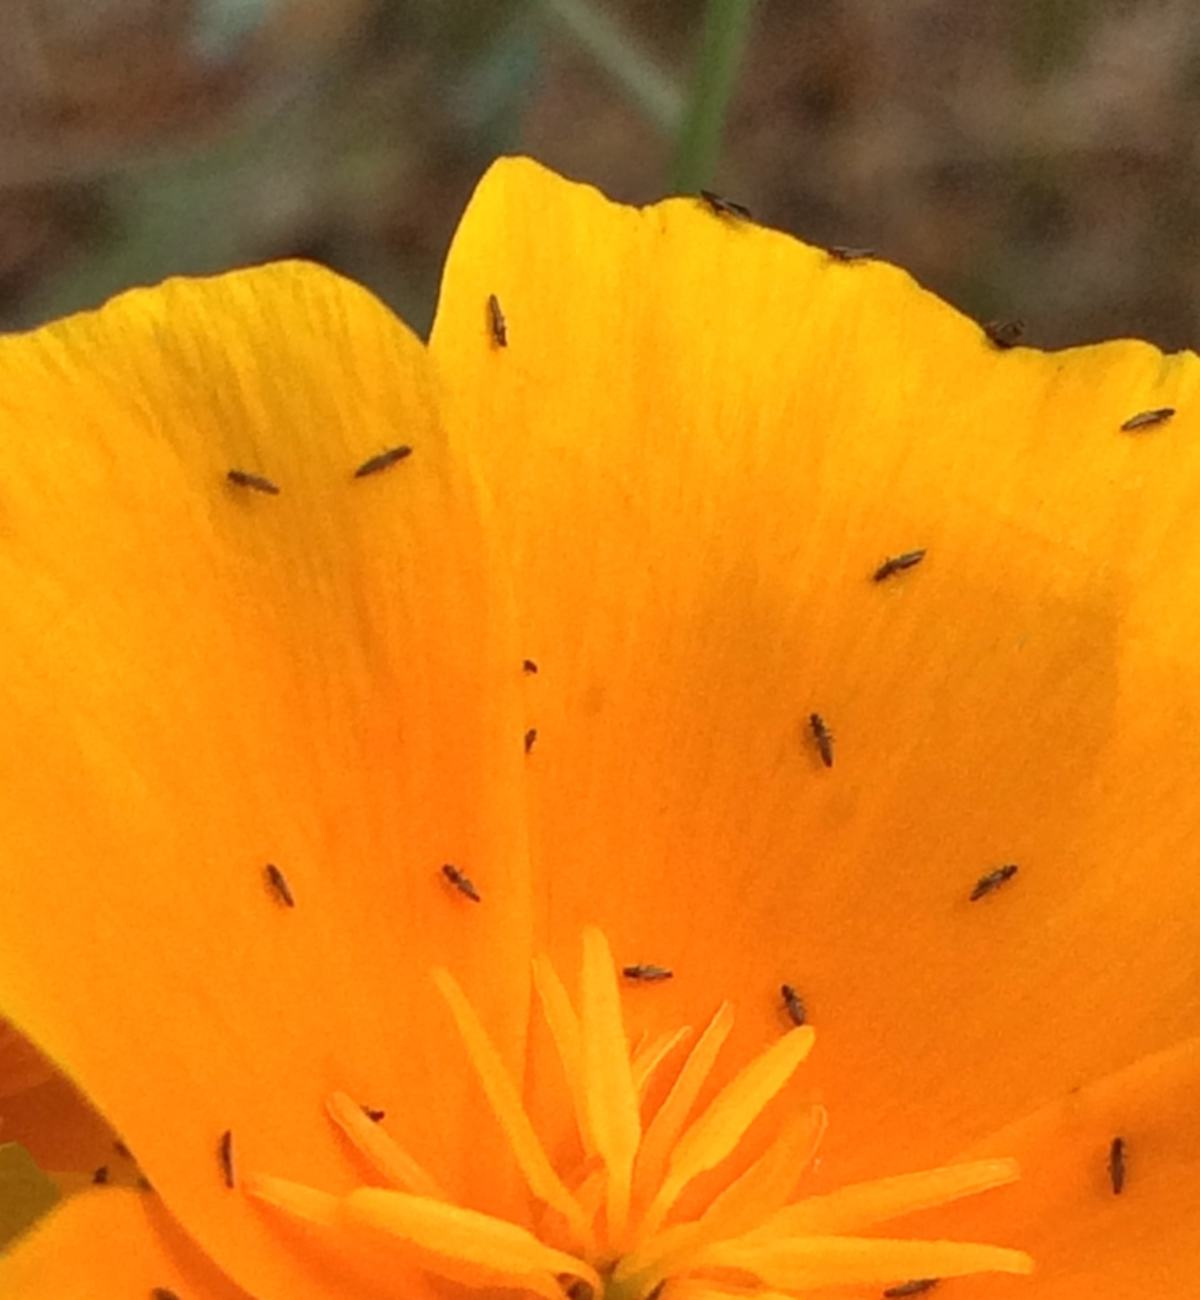 Thrips on a bright orange yellow flower